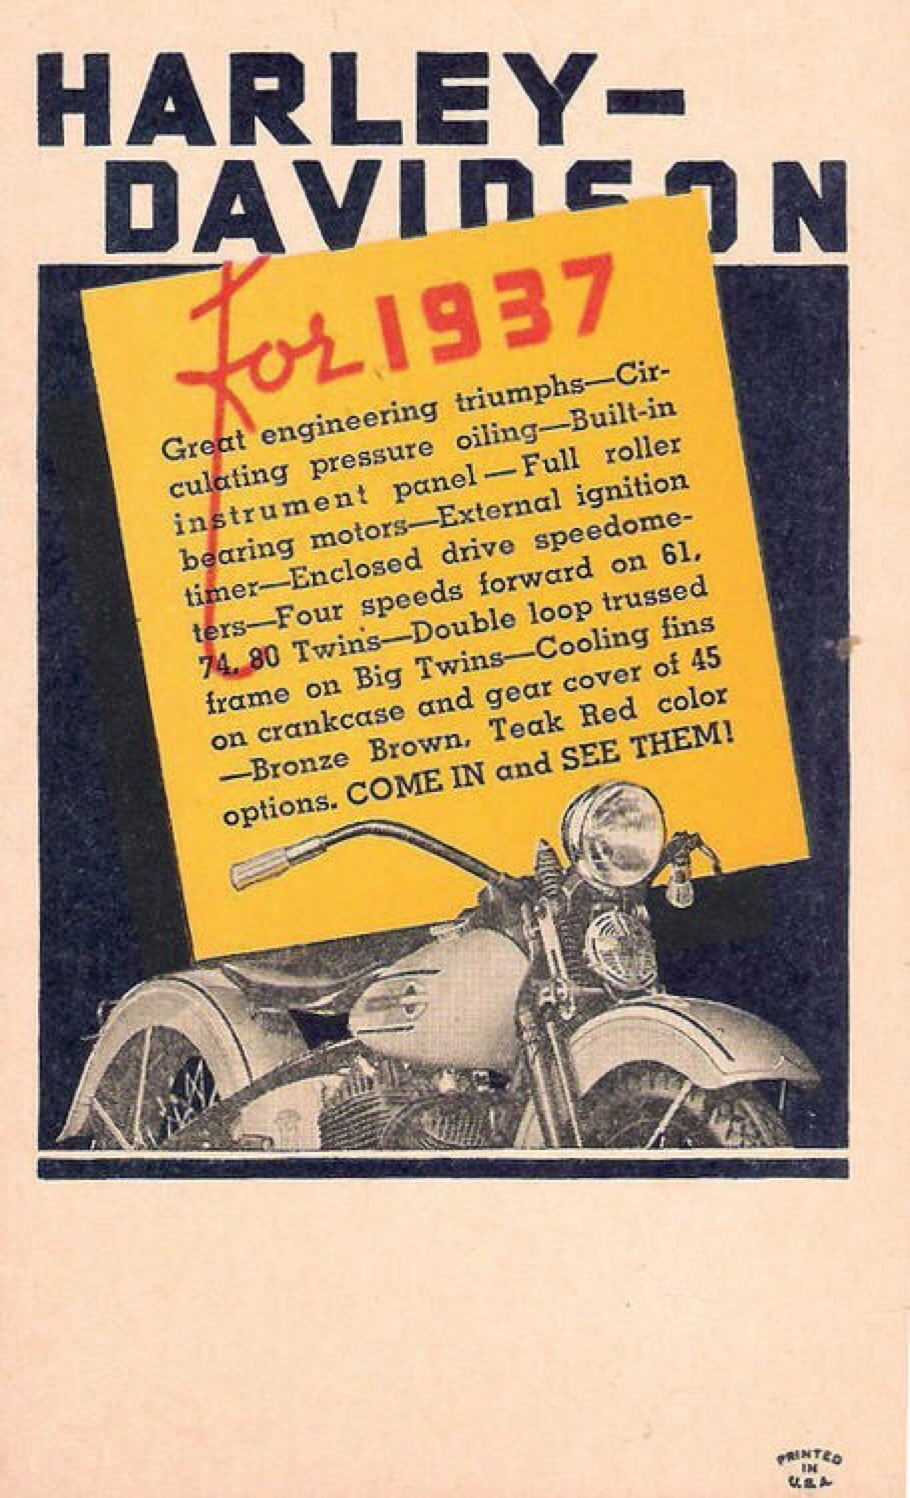 Harley-Davidson for 1937 - 01